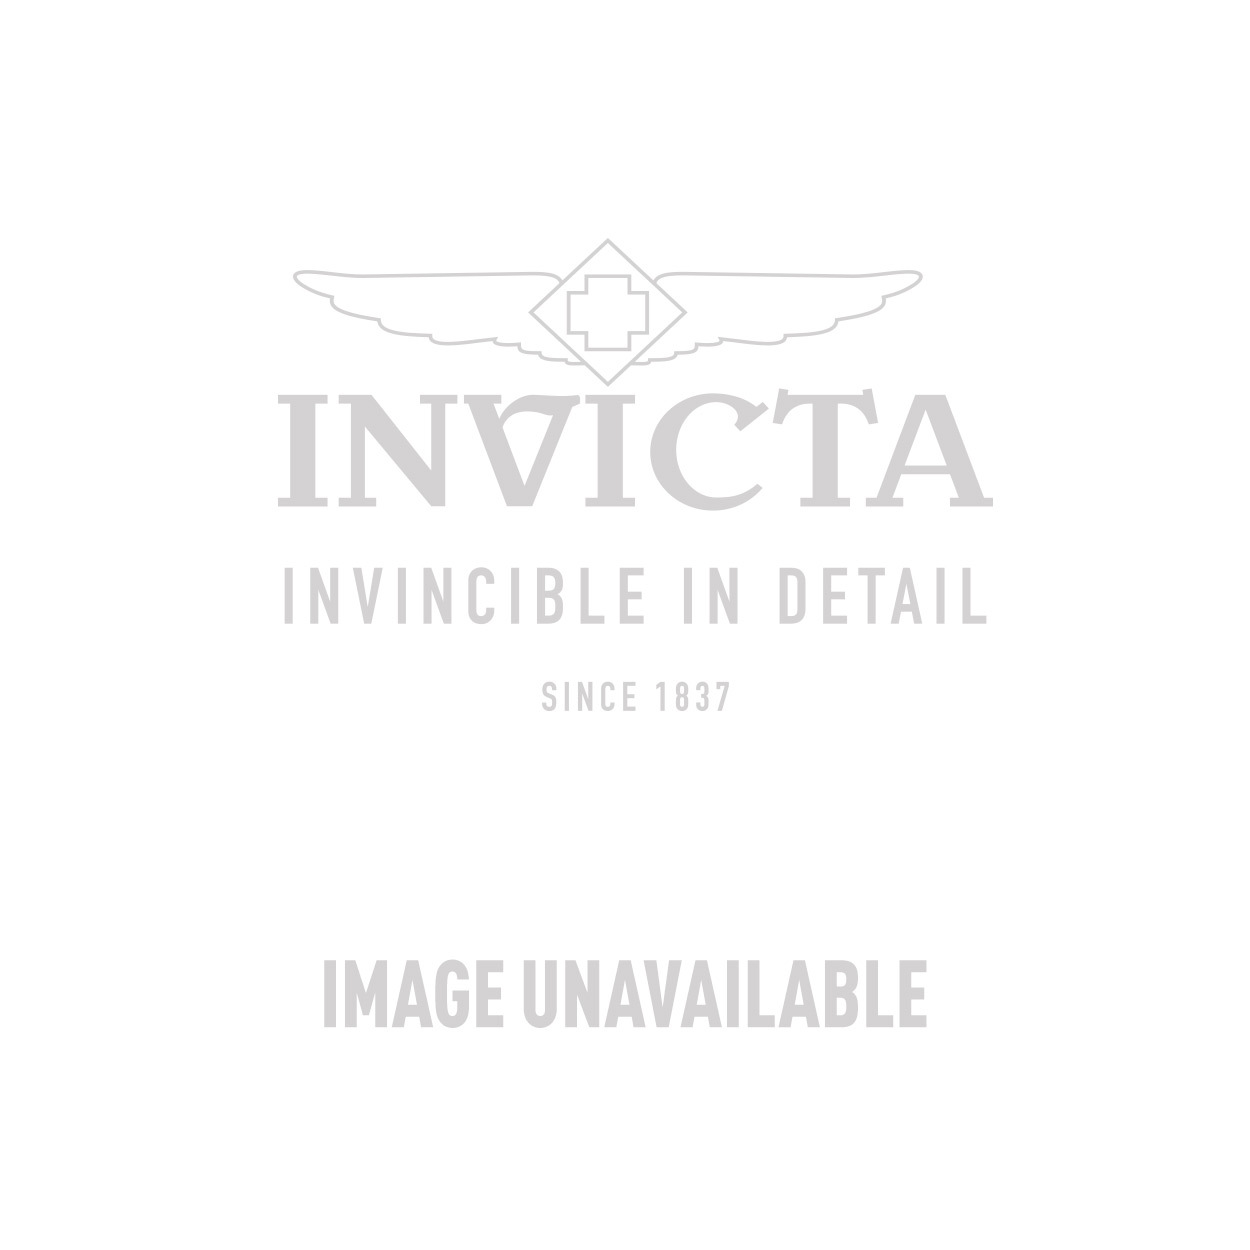 Invicta 1 Slot Impact Case - Model DC1YEL